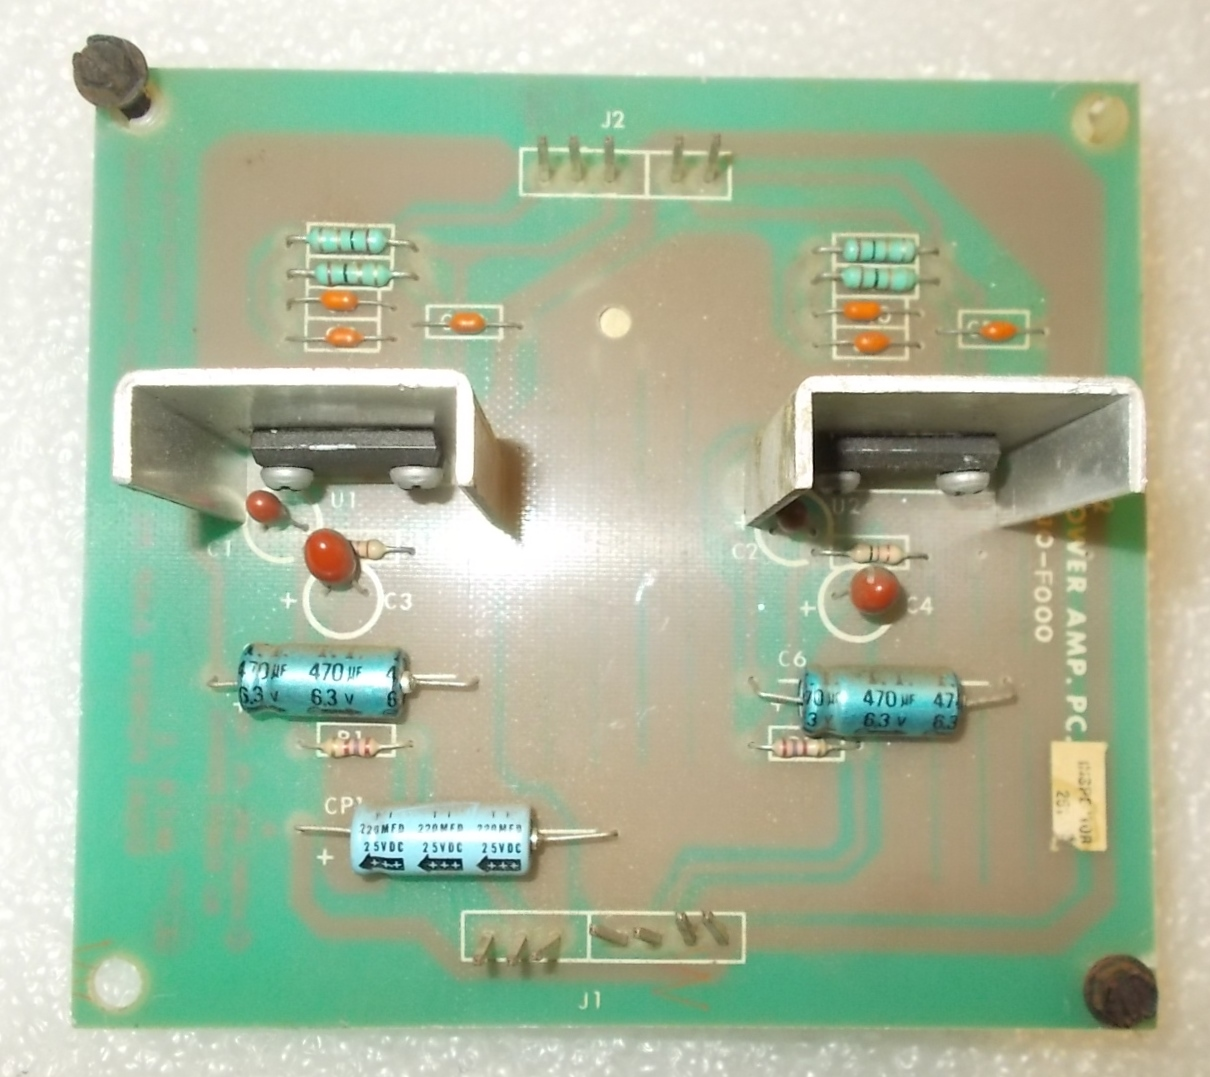 Bally Midway Arcade Machine Game Pcb Printed Circuit Dual Power Amp The On A Good Quality Or Common Board 814